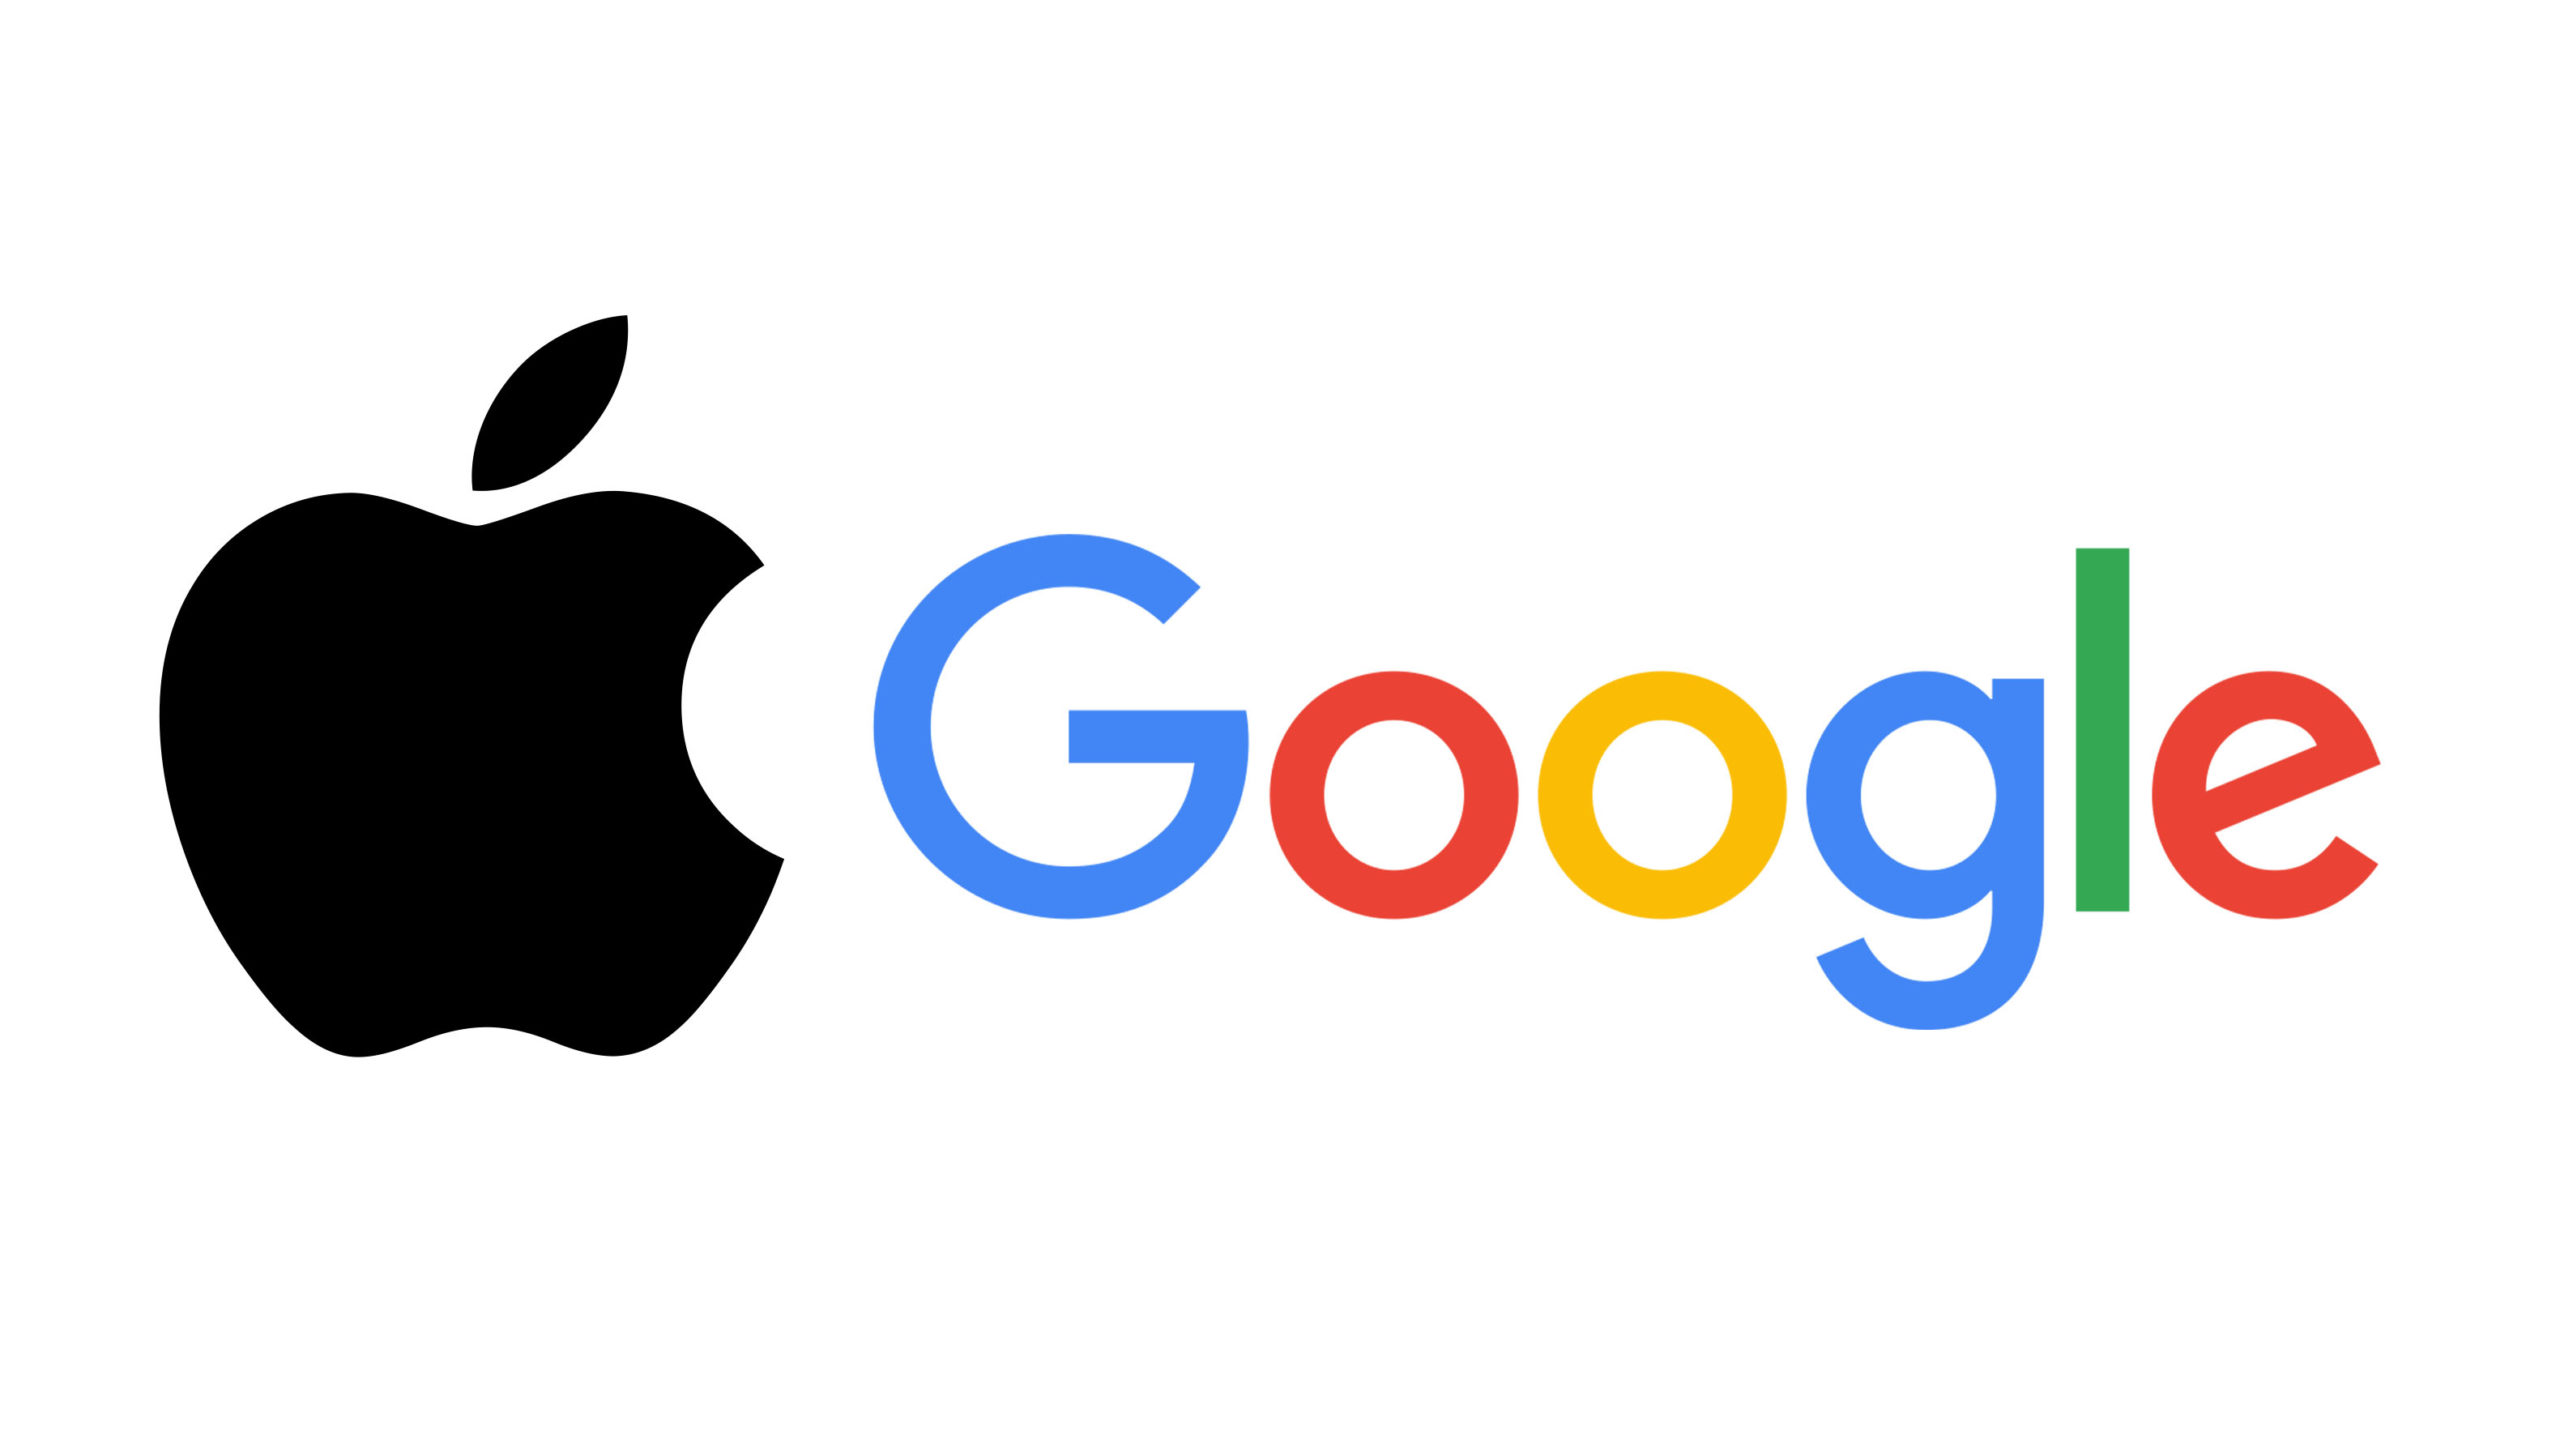 Apple, Google share more details about COVID-19 contact tracing system